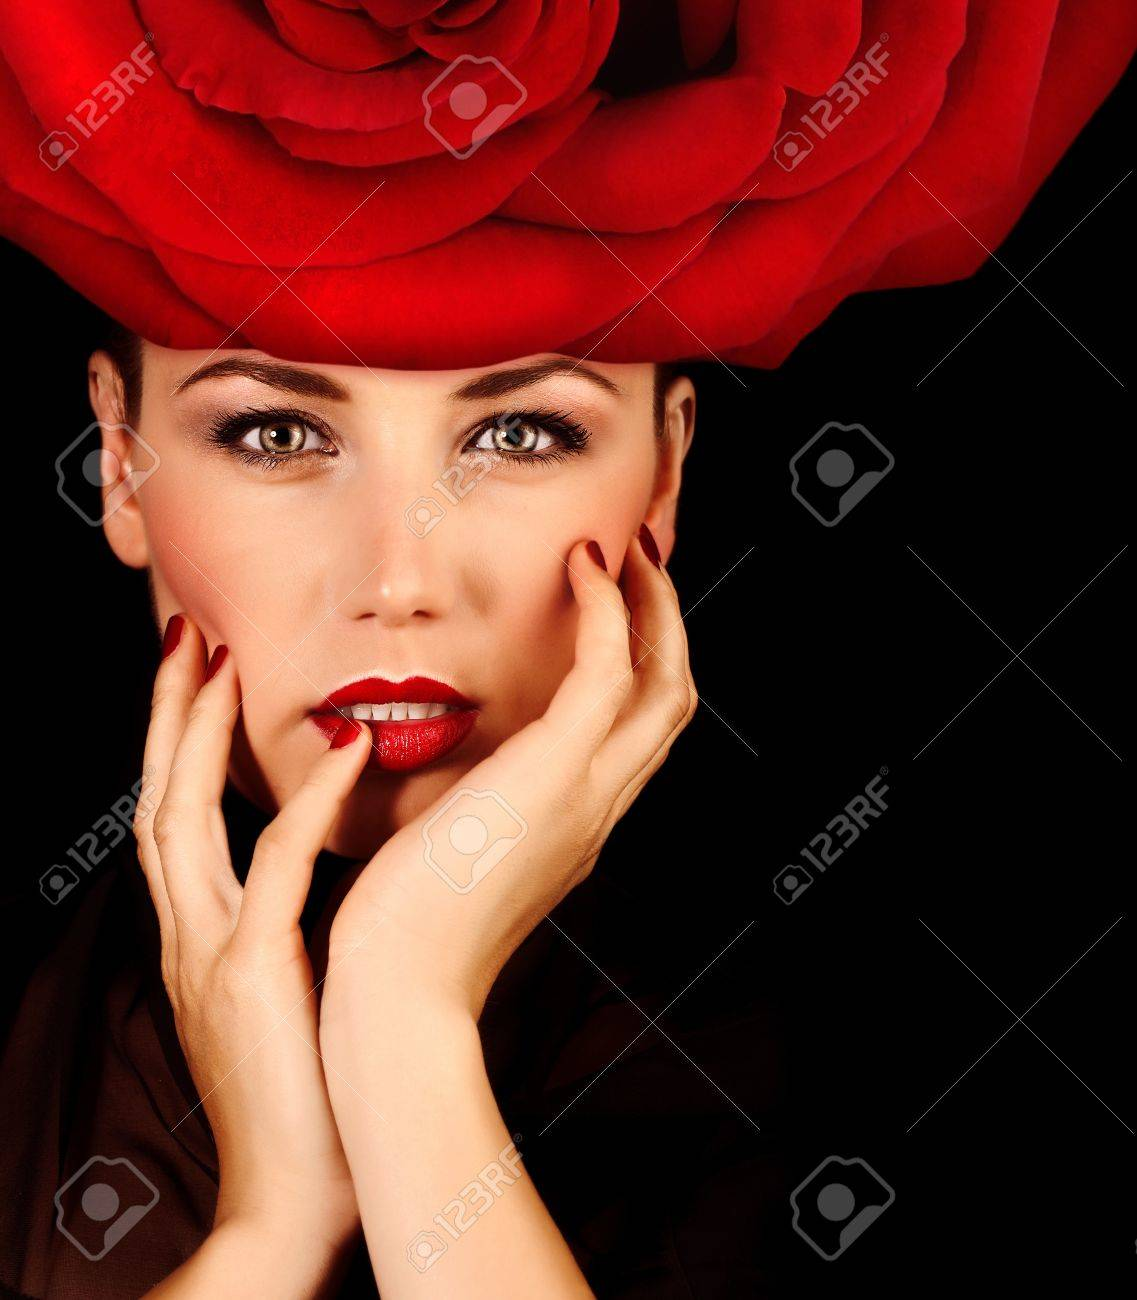 Photo of beautiful sexy woman with red rose hat on the head isolated on  black background bb6912ca924e